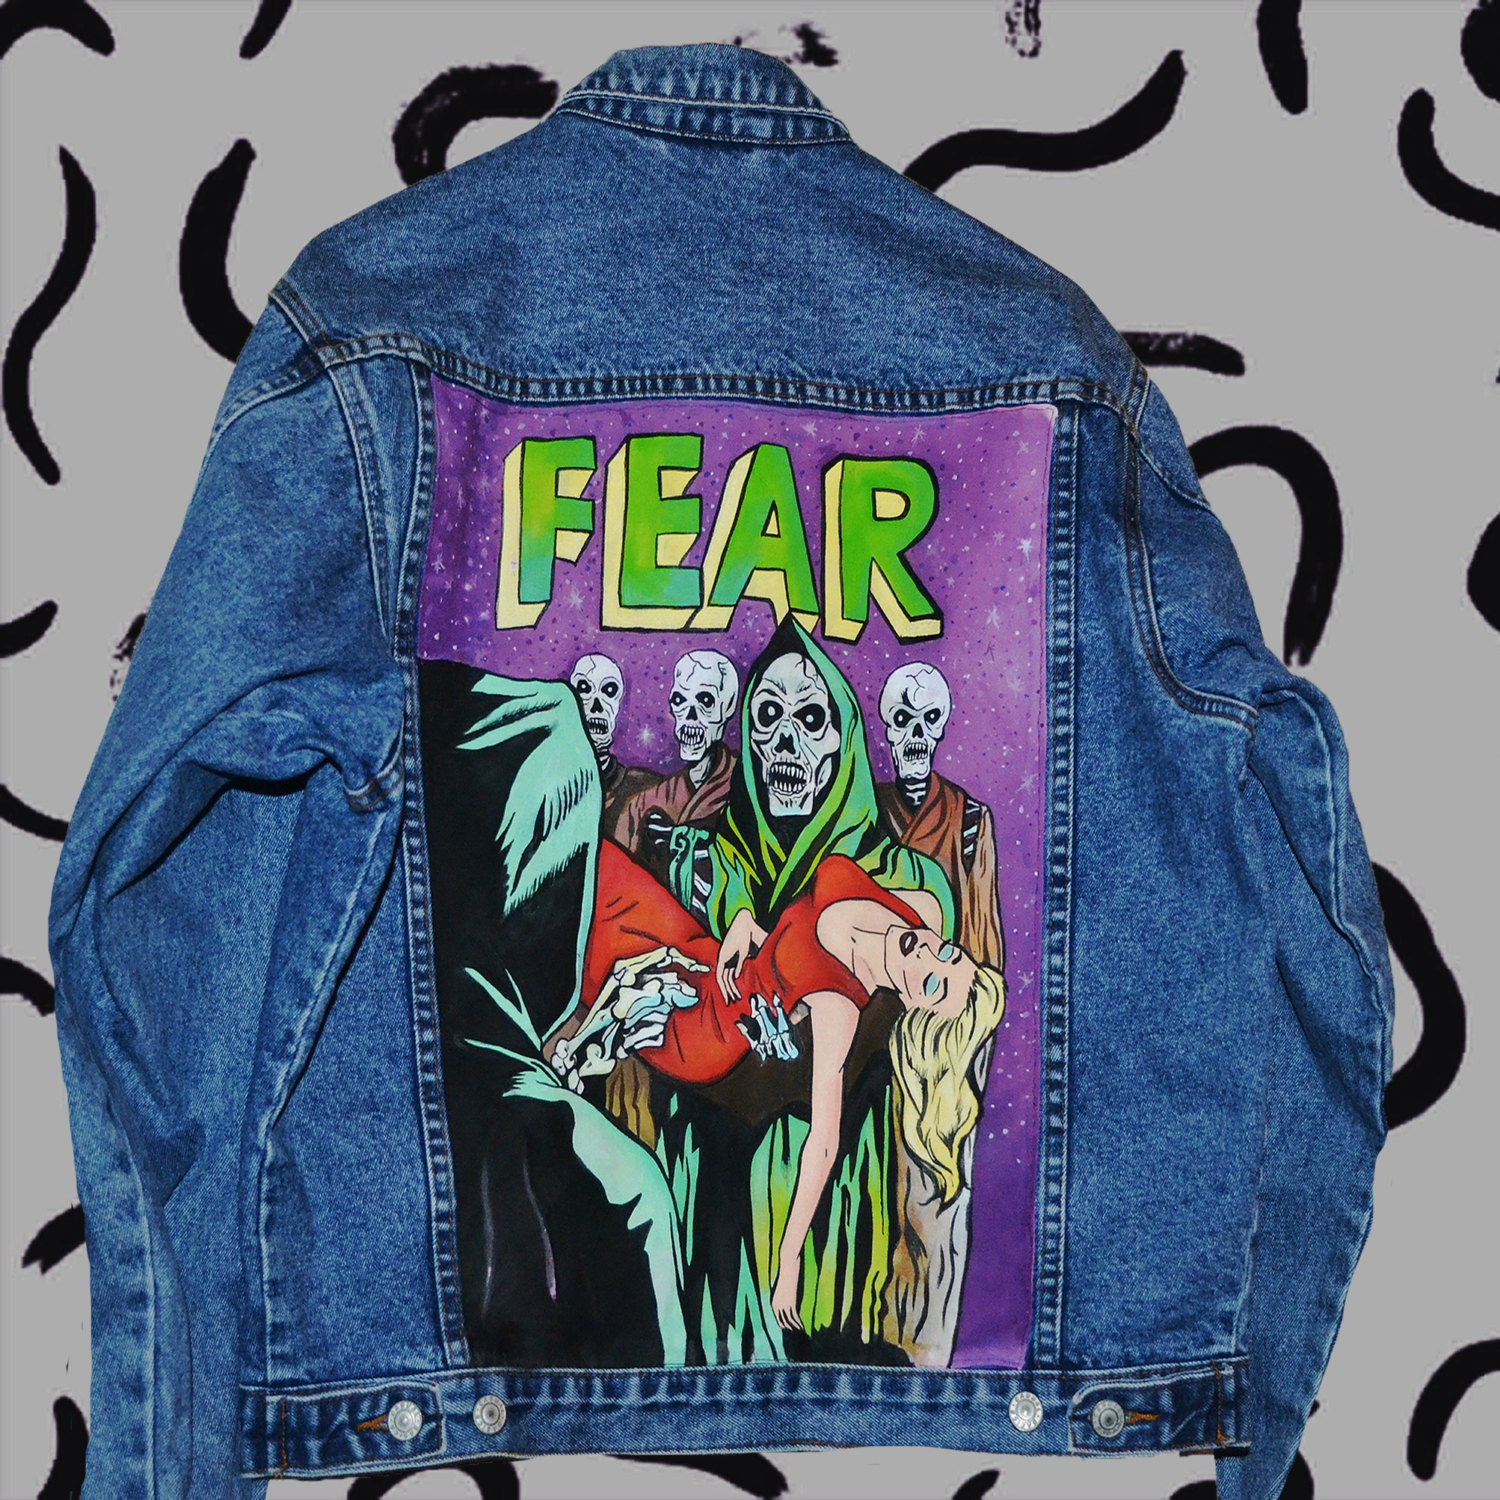 Vintage Horror Comics Handpainted Denim Jacket